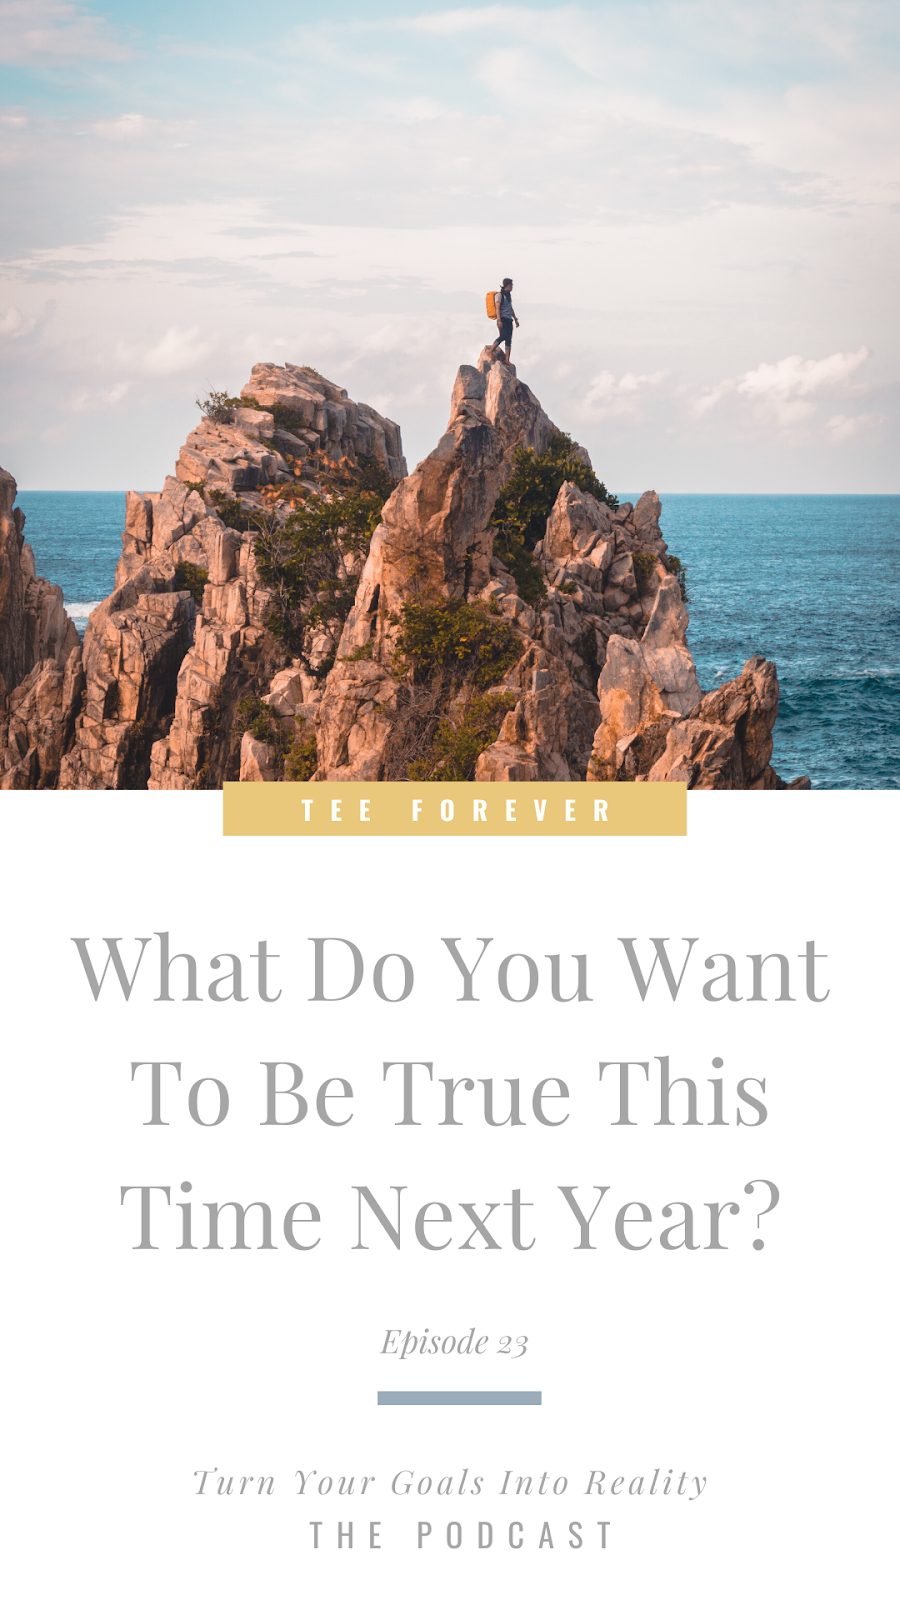 What Do You Want To Be True This Time Next Year?